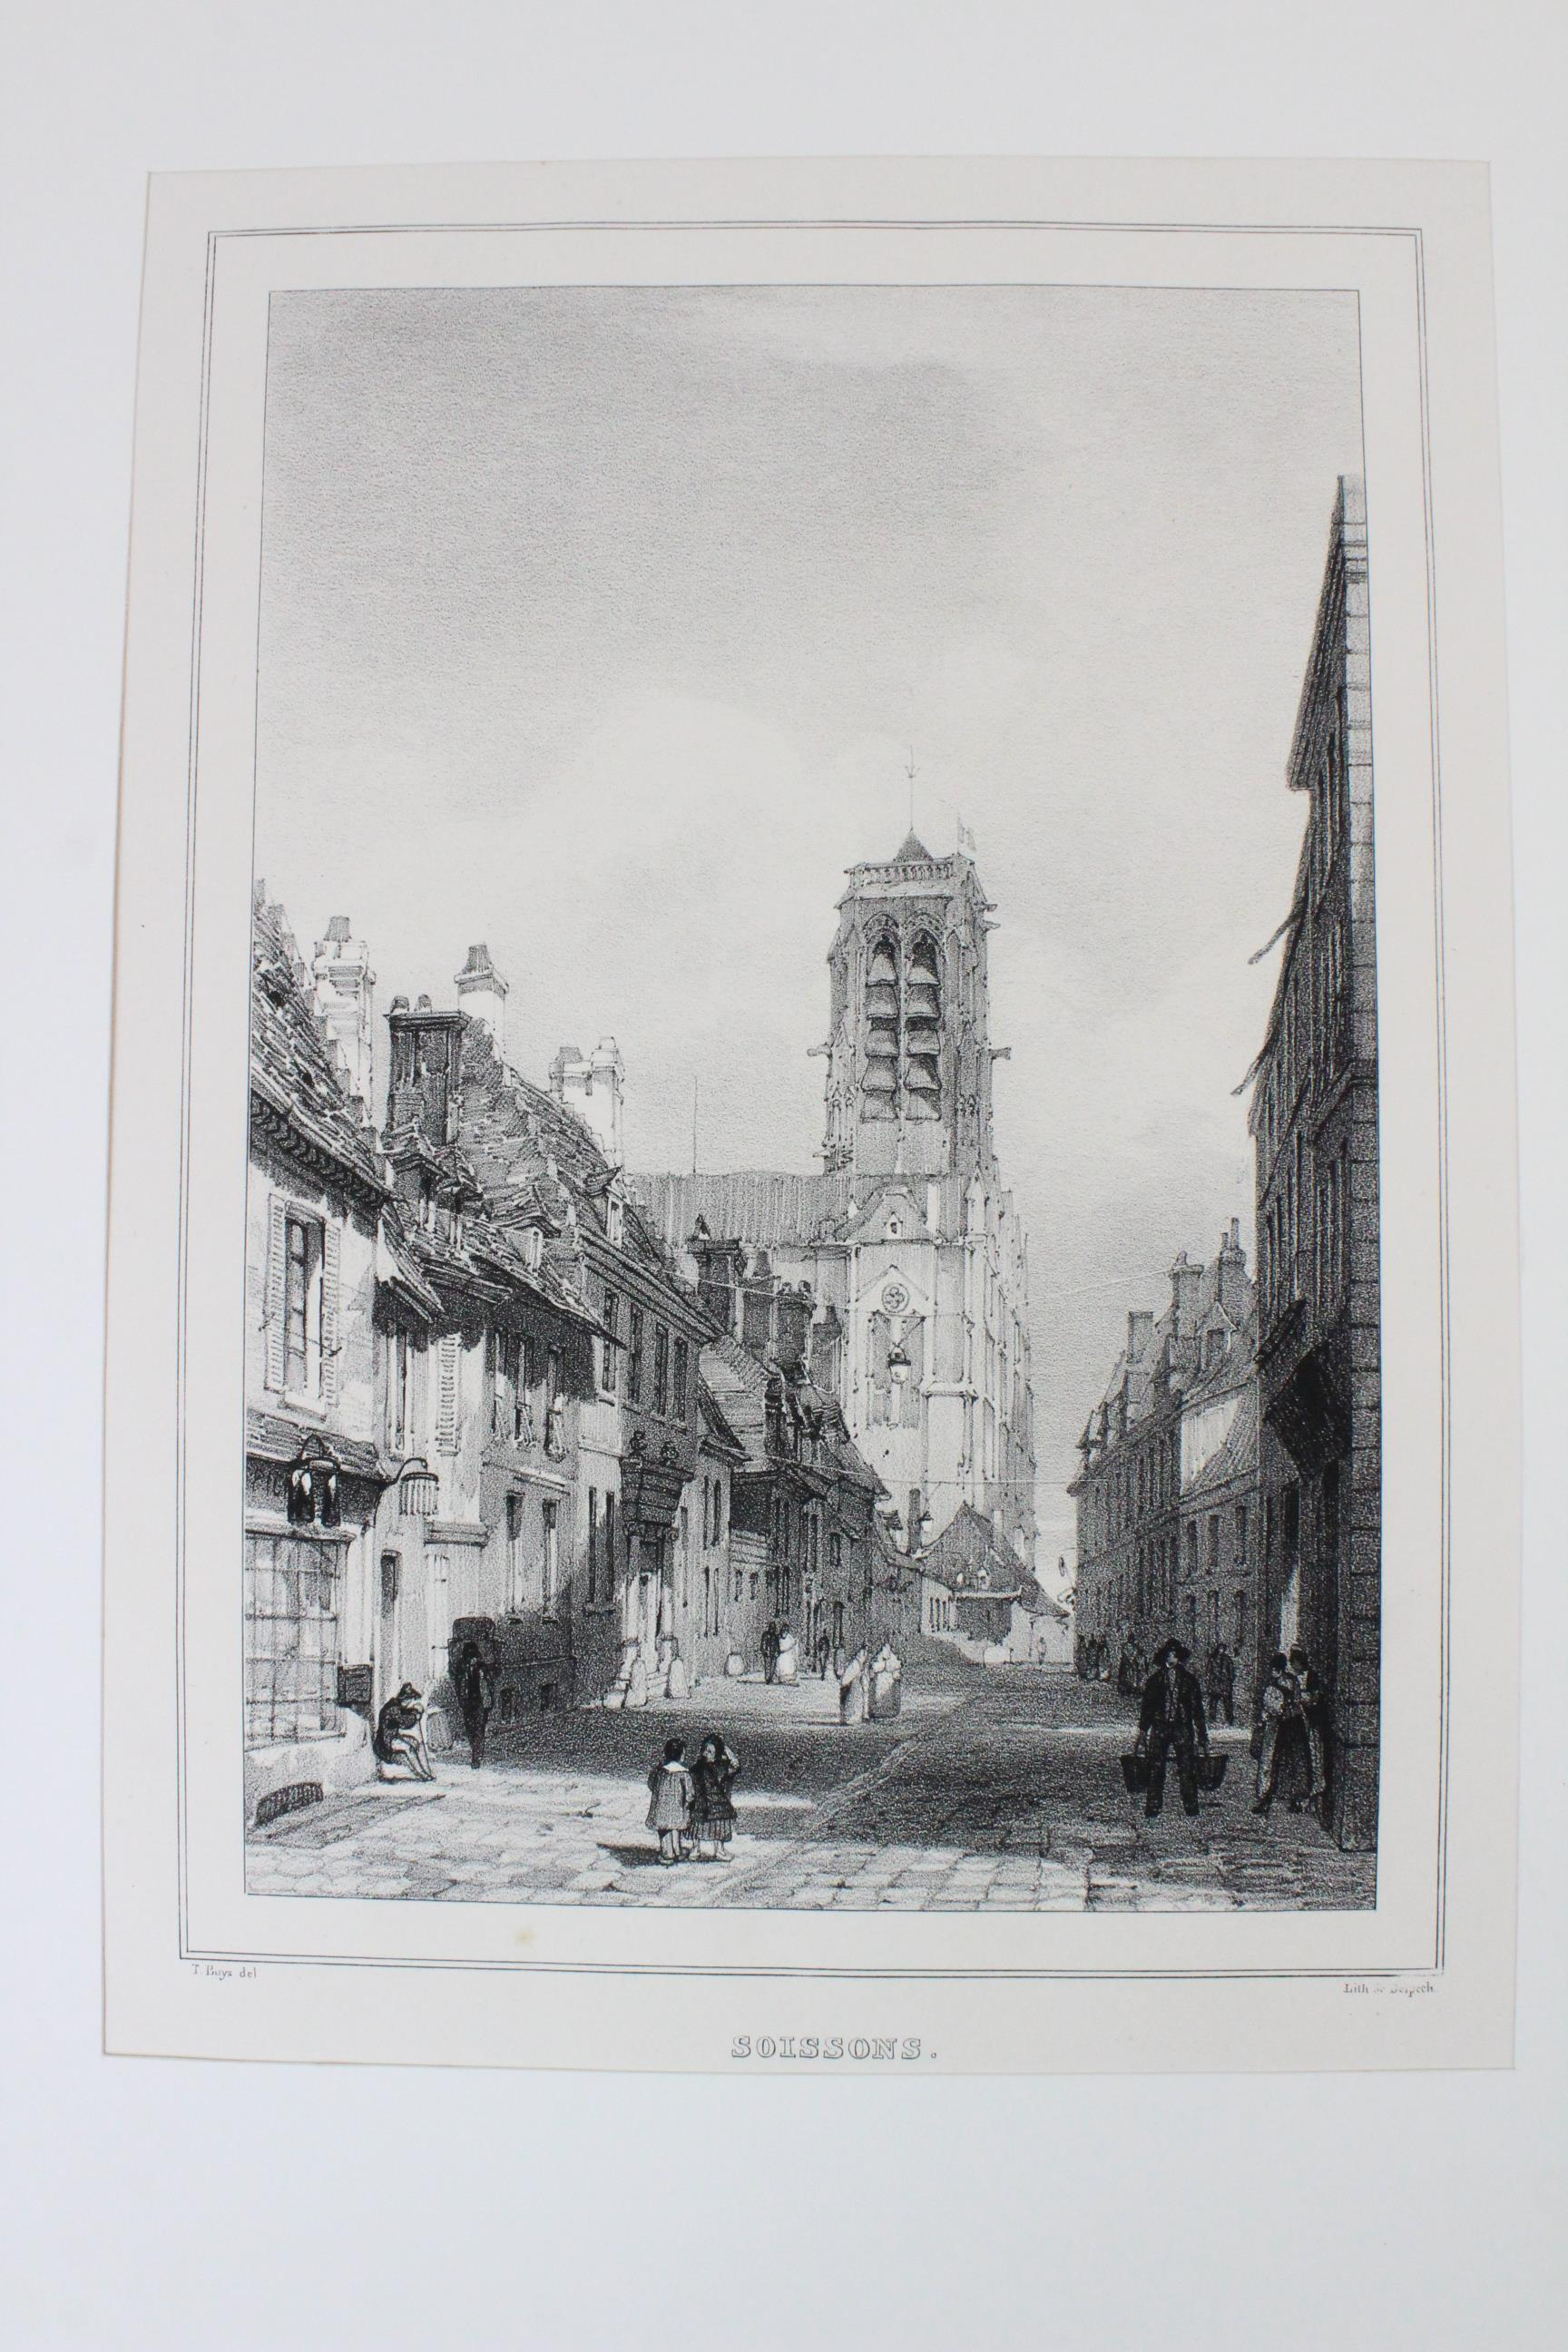 After Thomas Shotter Boys (1803-1874), Eight views of French cities, comprising: 'The Porch Of - Image 19 of 30